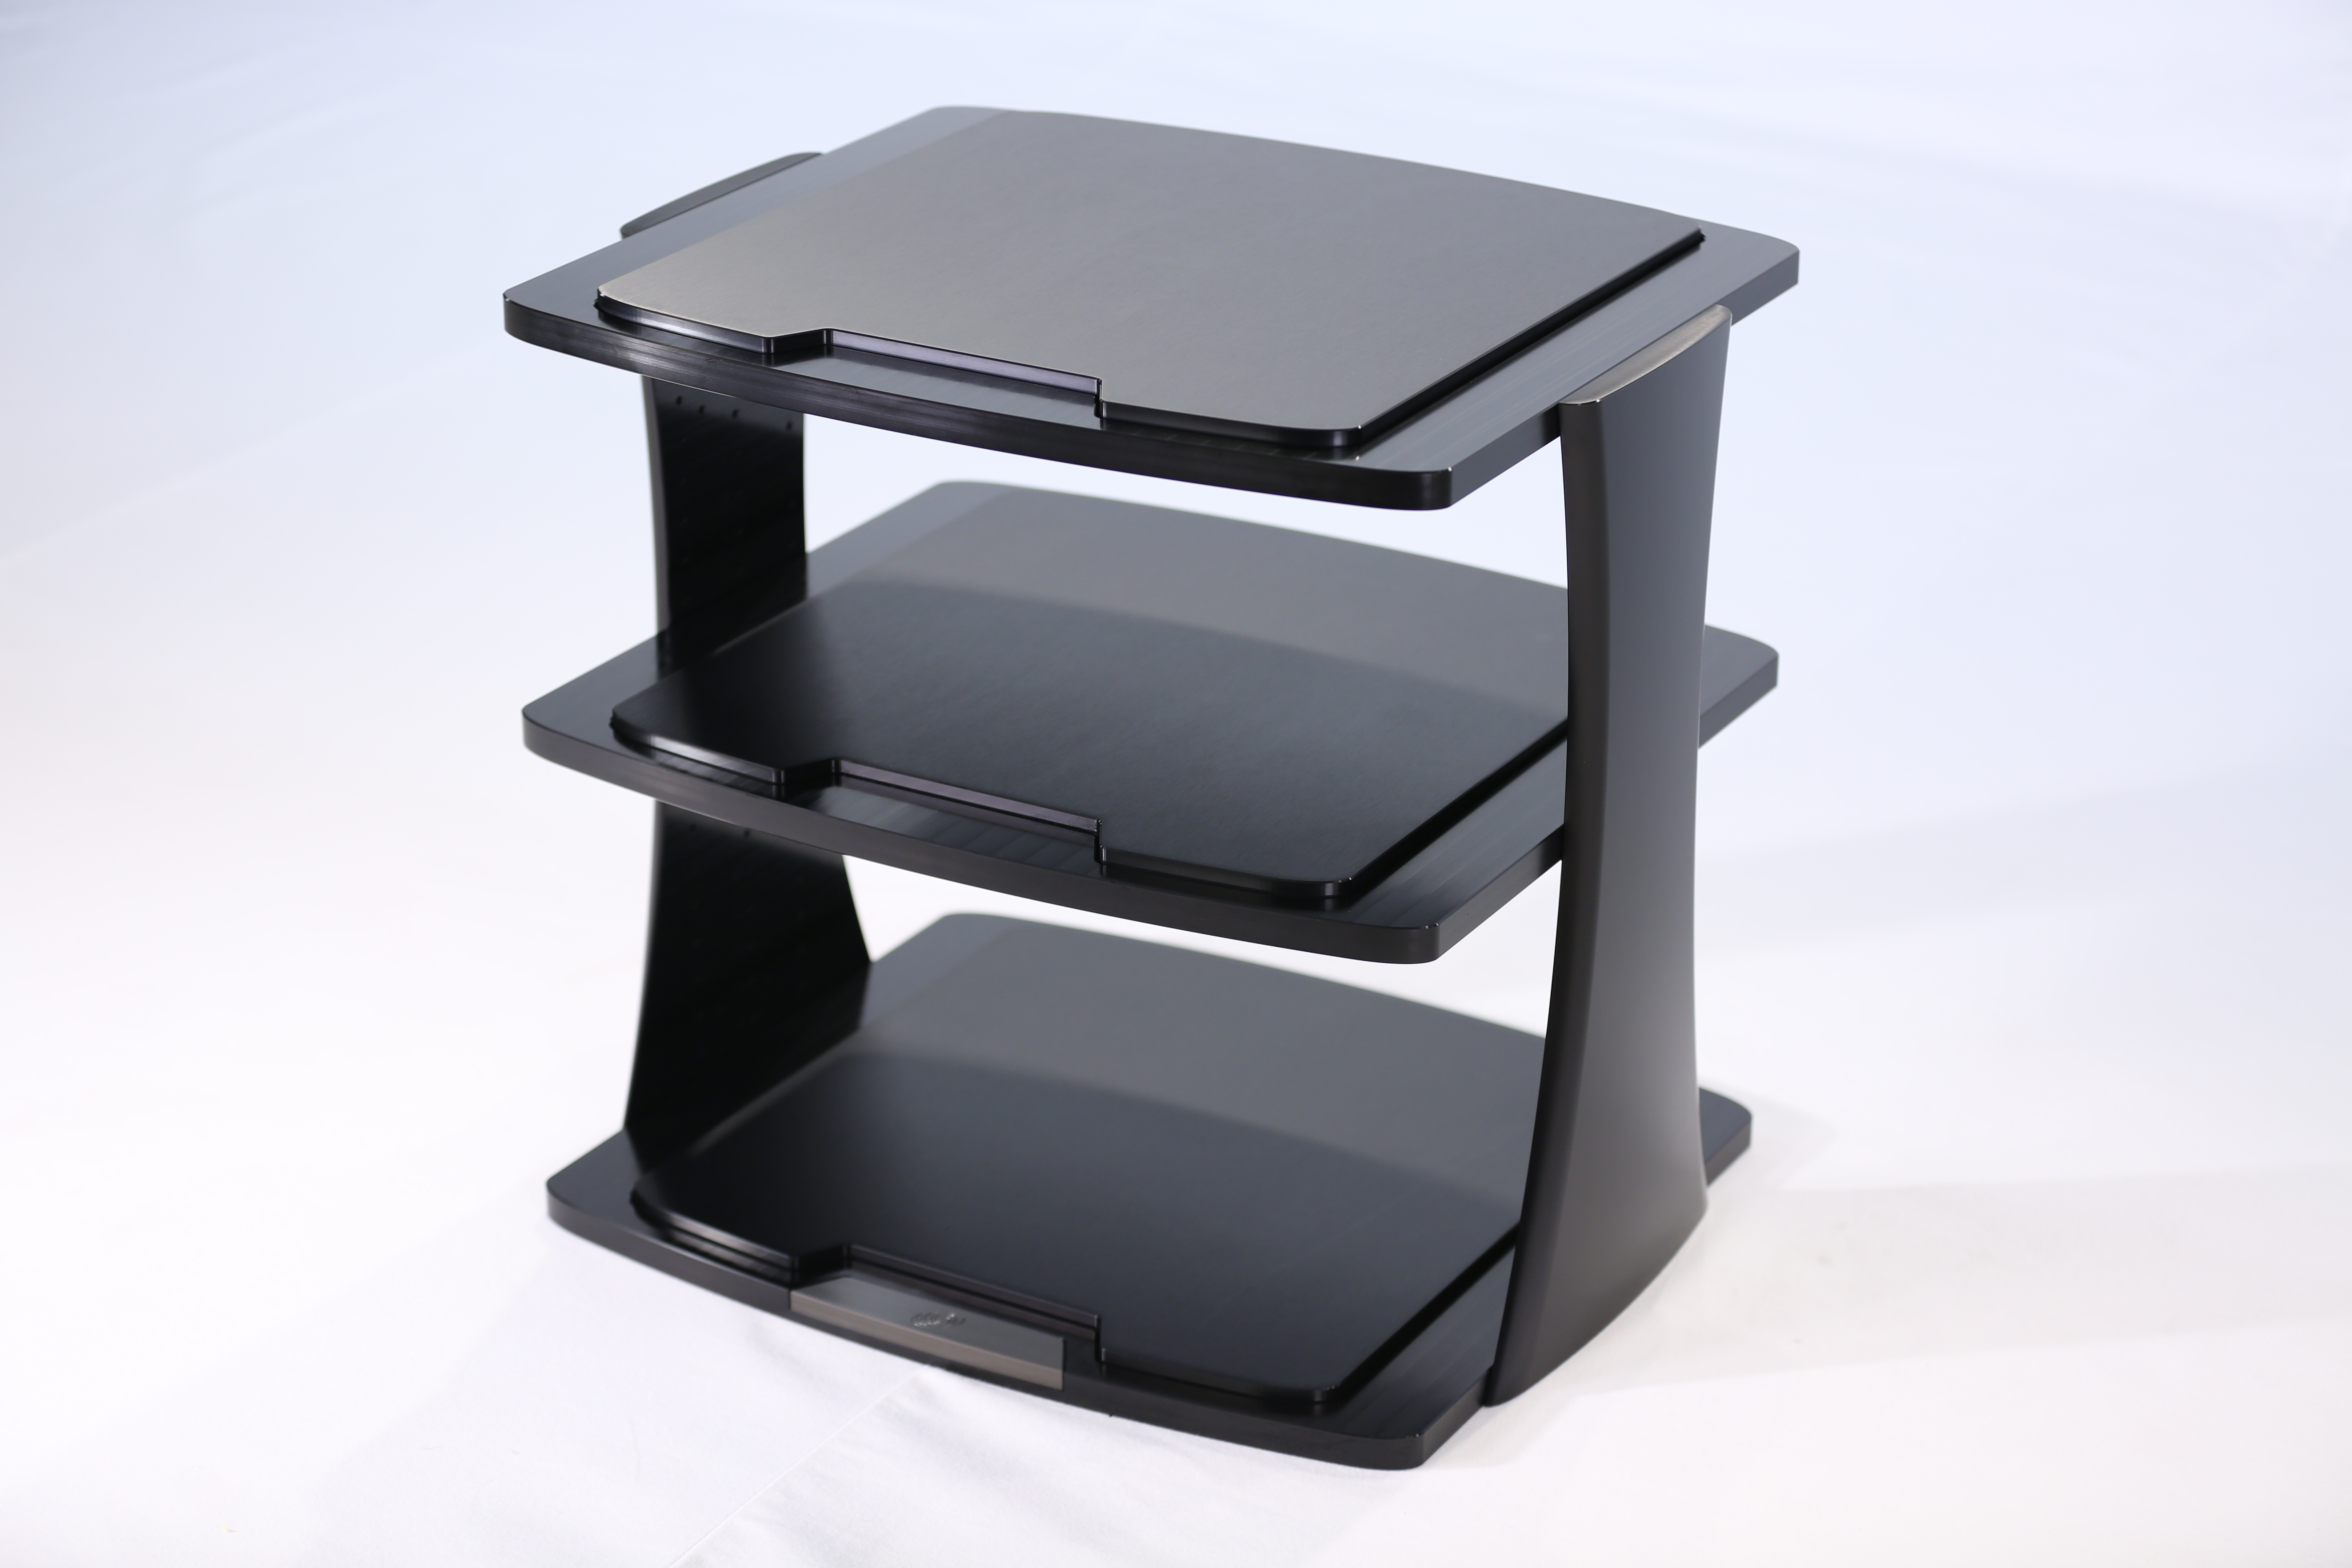 lovely at dynamic furniture adjustable stand racks height beautiful bello floor screen flat tv vivo for home display rack universal of audio decor stands panel mount gallery amp